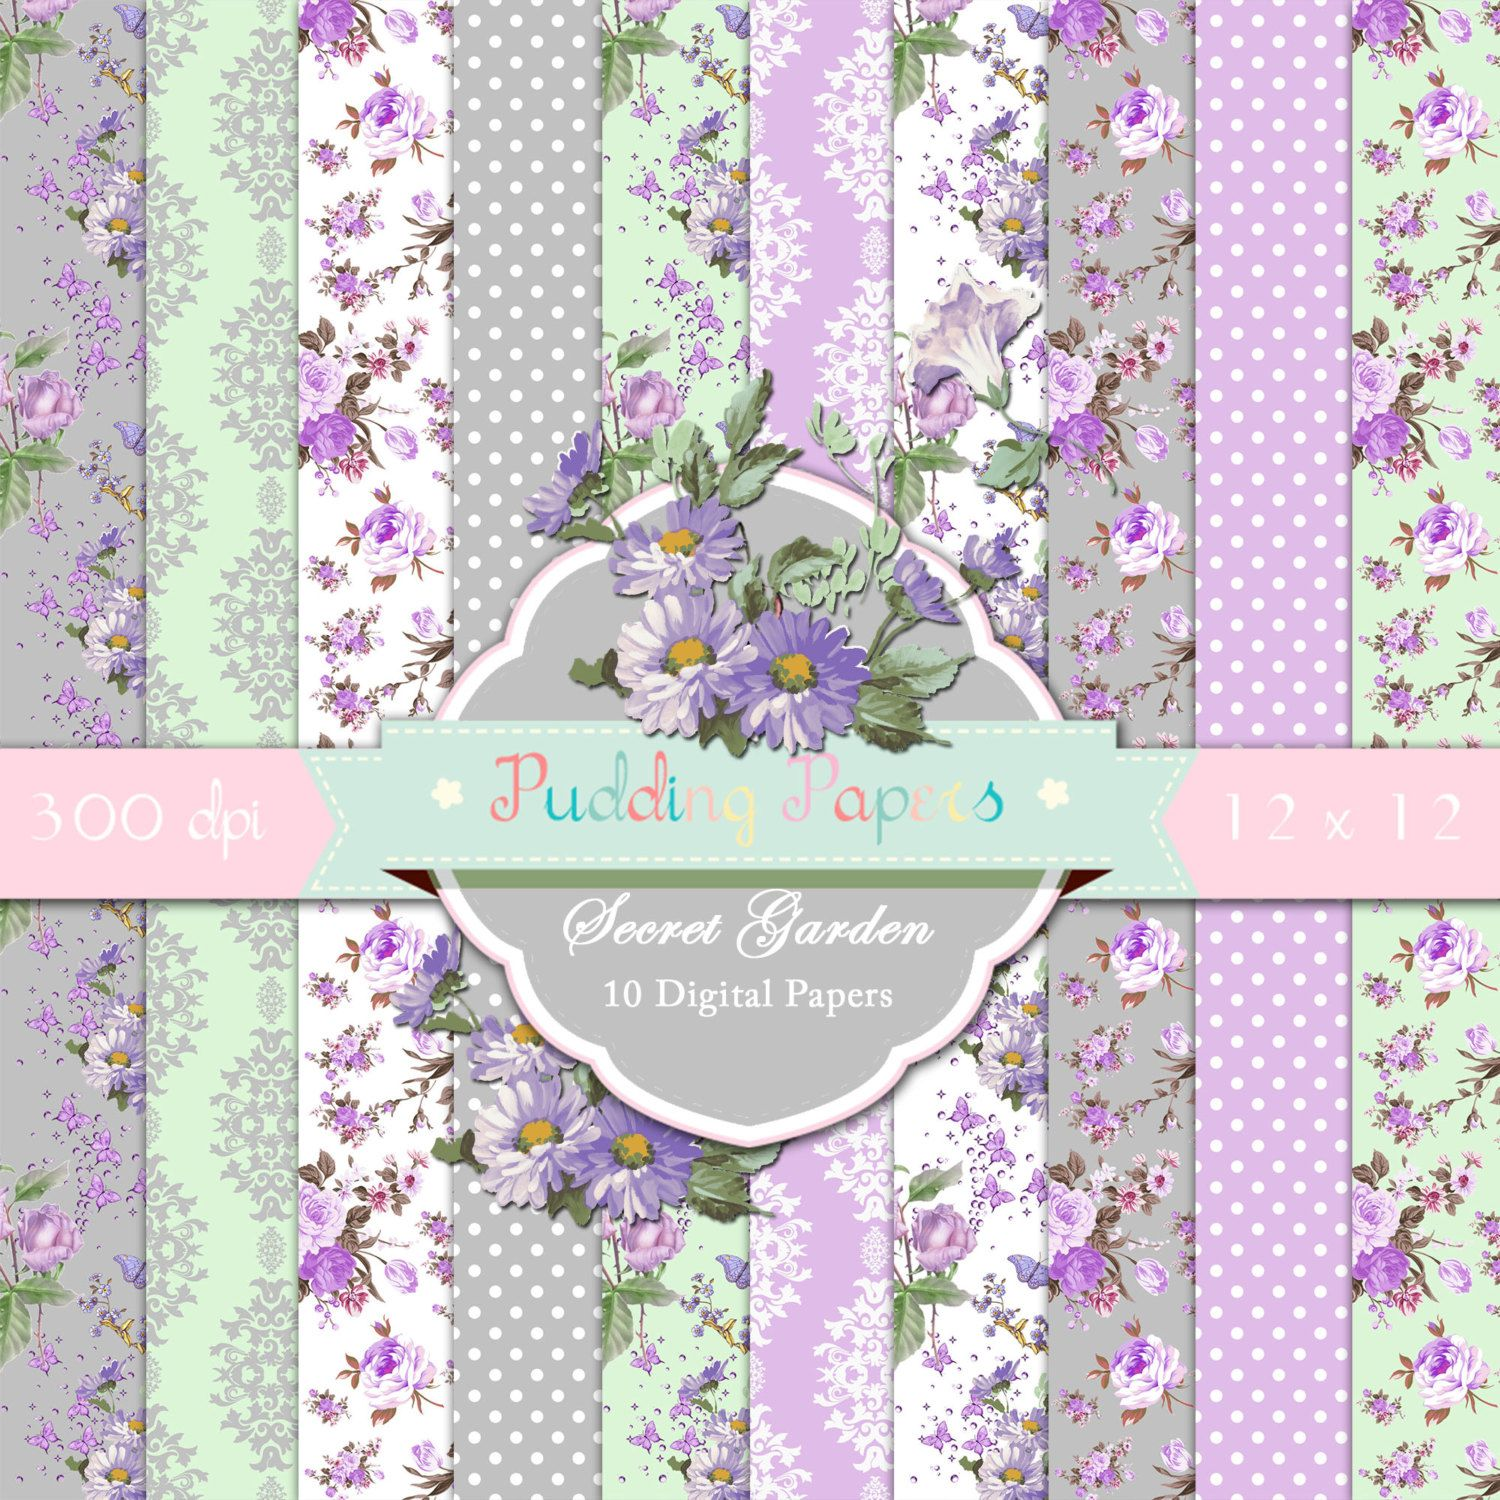 Secret Garden - Instant Download Digital Paper Scrapbook Paper Floral Paper Decoupage Paper Shabby Chic Purple Grey Wedding Paper puddingpapers 4.60 USD